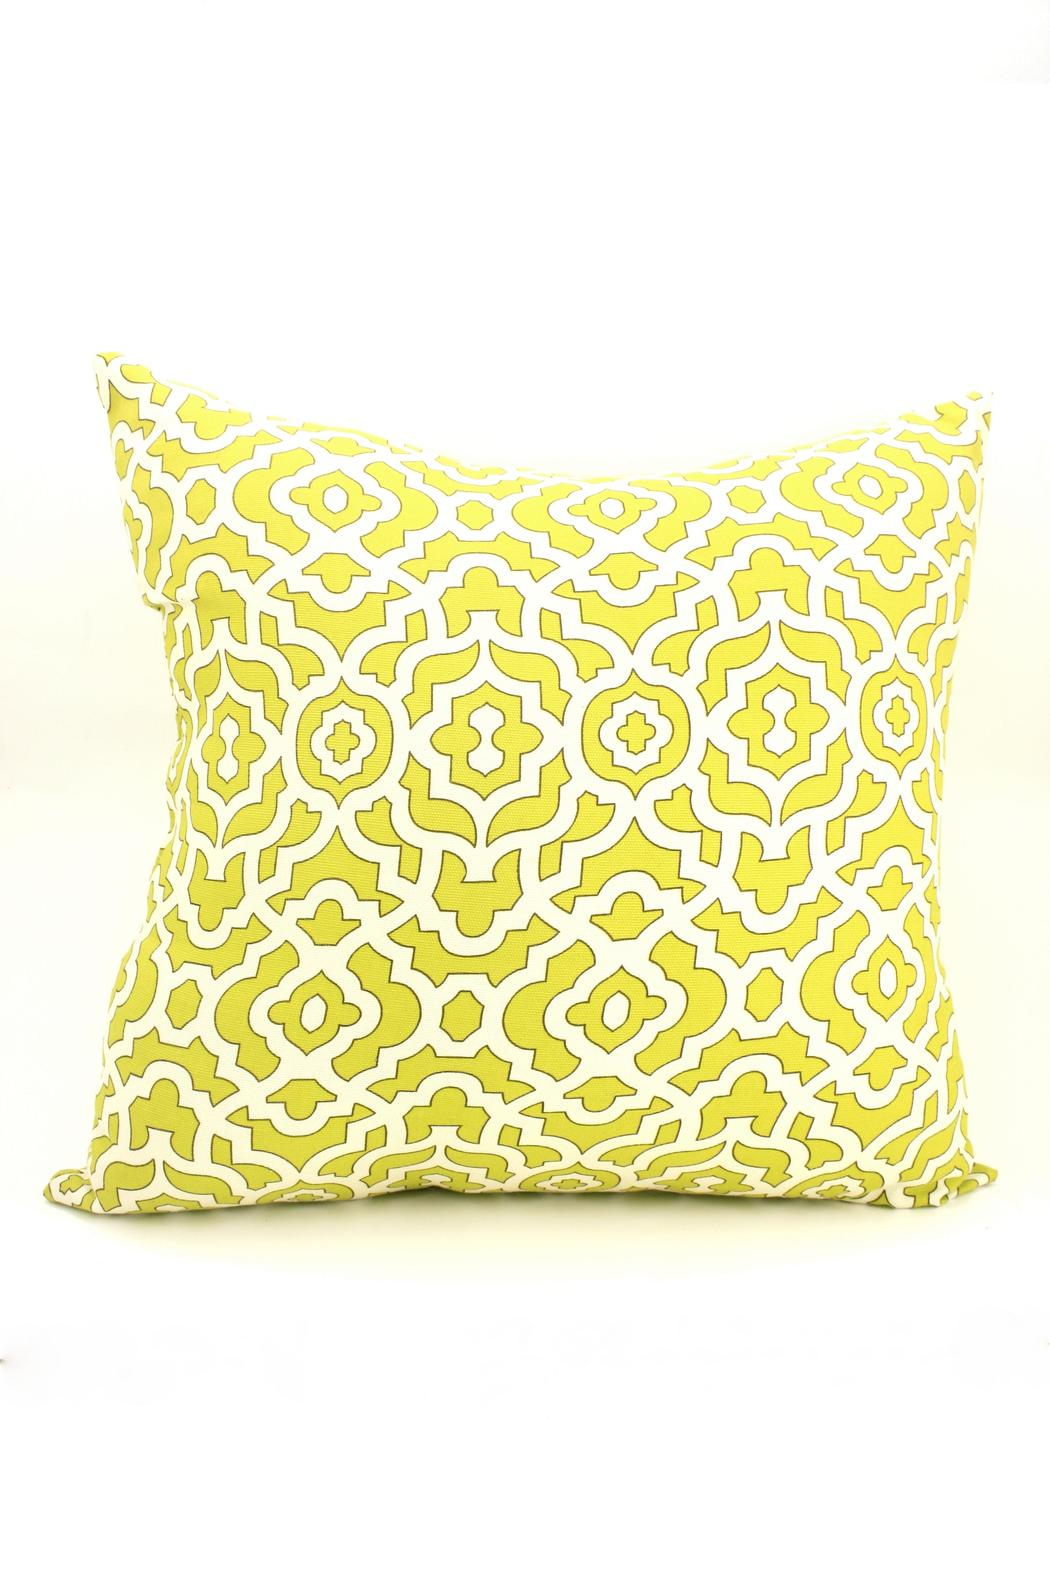 Throw Pillow Love : Cheebie K s Love Throw Pillow from Tennessee by Unique Boutique ? Shoptiques